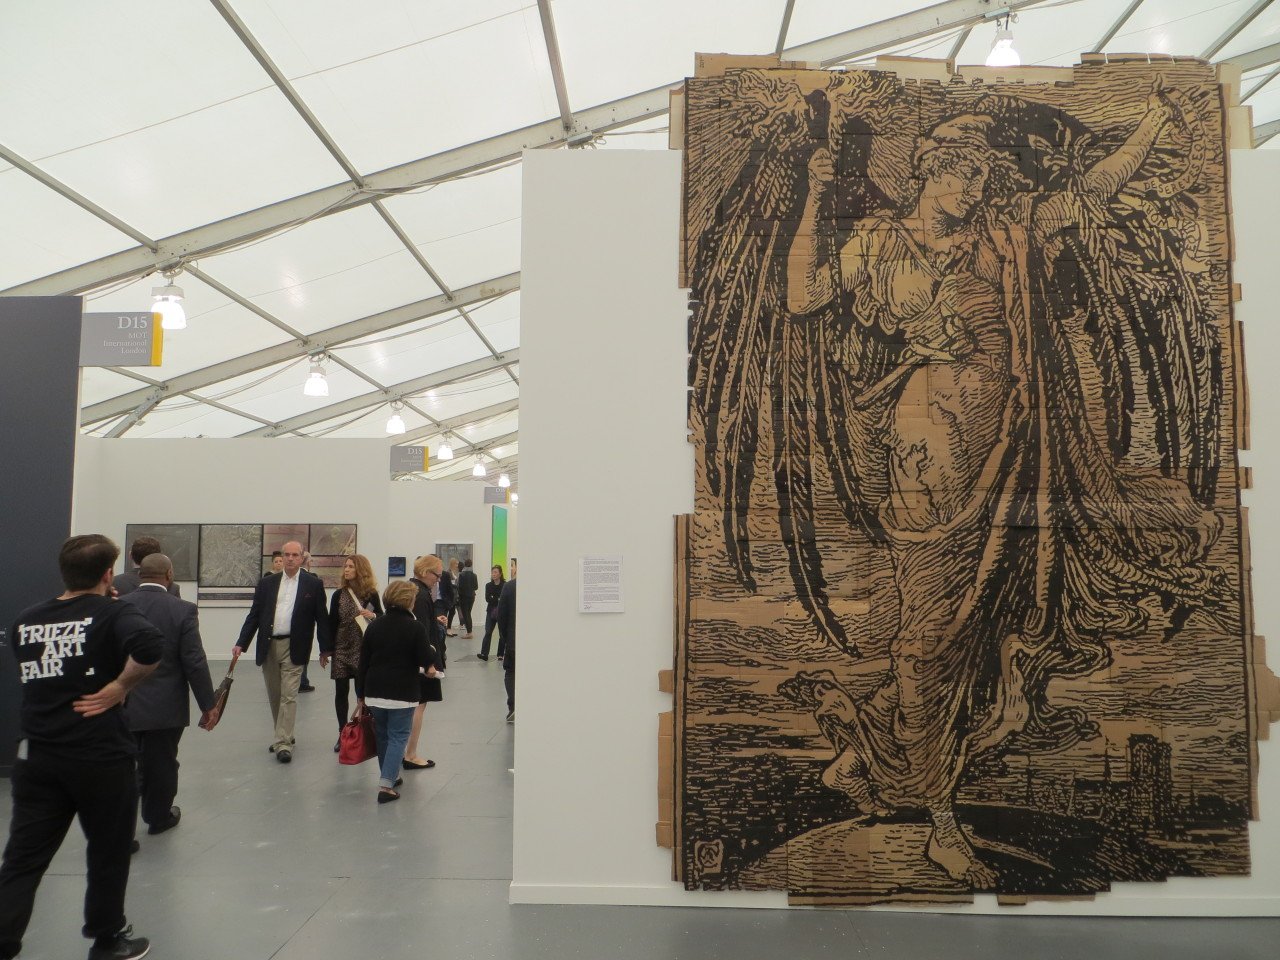 Andrea Bowers, 2013 — displayed at Susanne Vielmetter's booth at the Frieze Art Fair, along with a letter to the Fair's organizers [available here] denouncing their employment of non-union laborers.